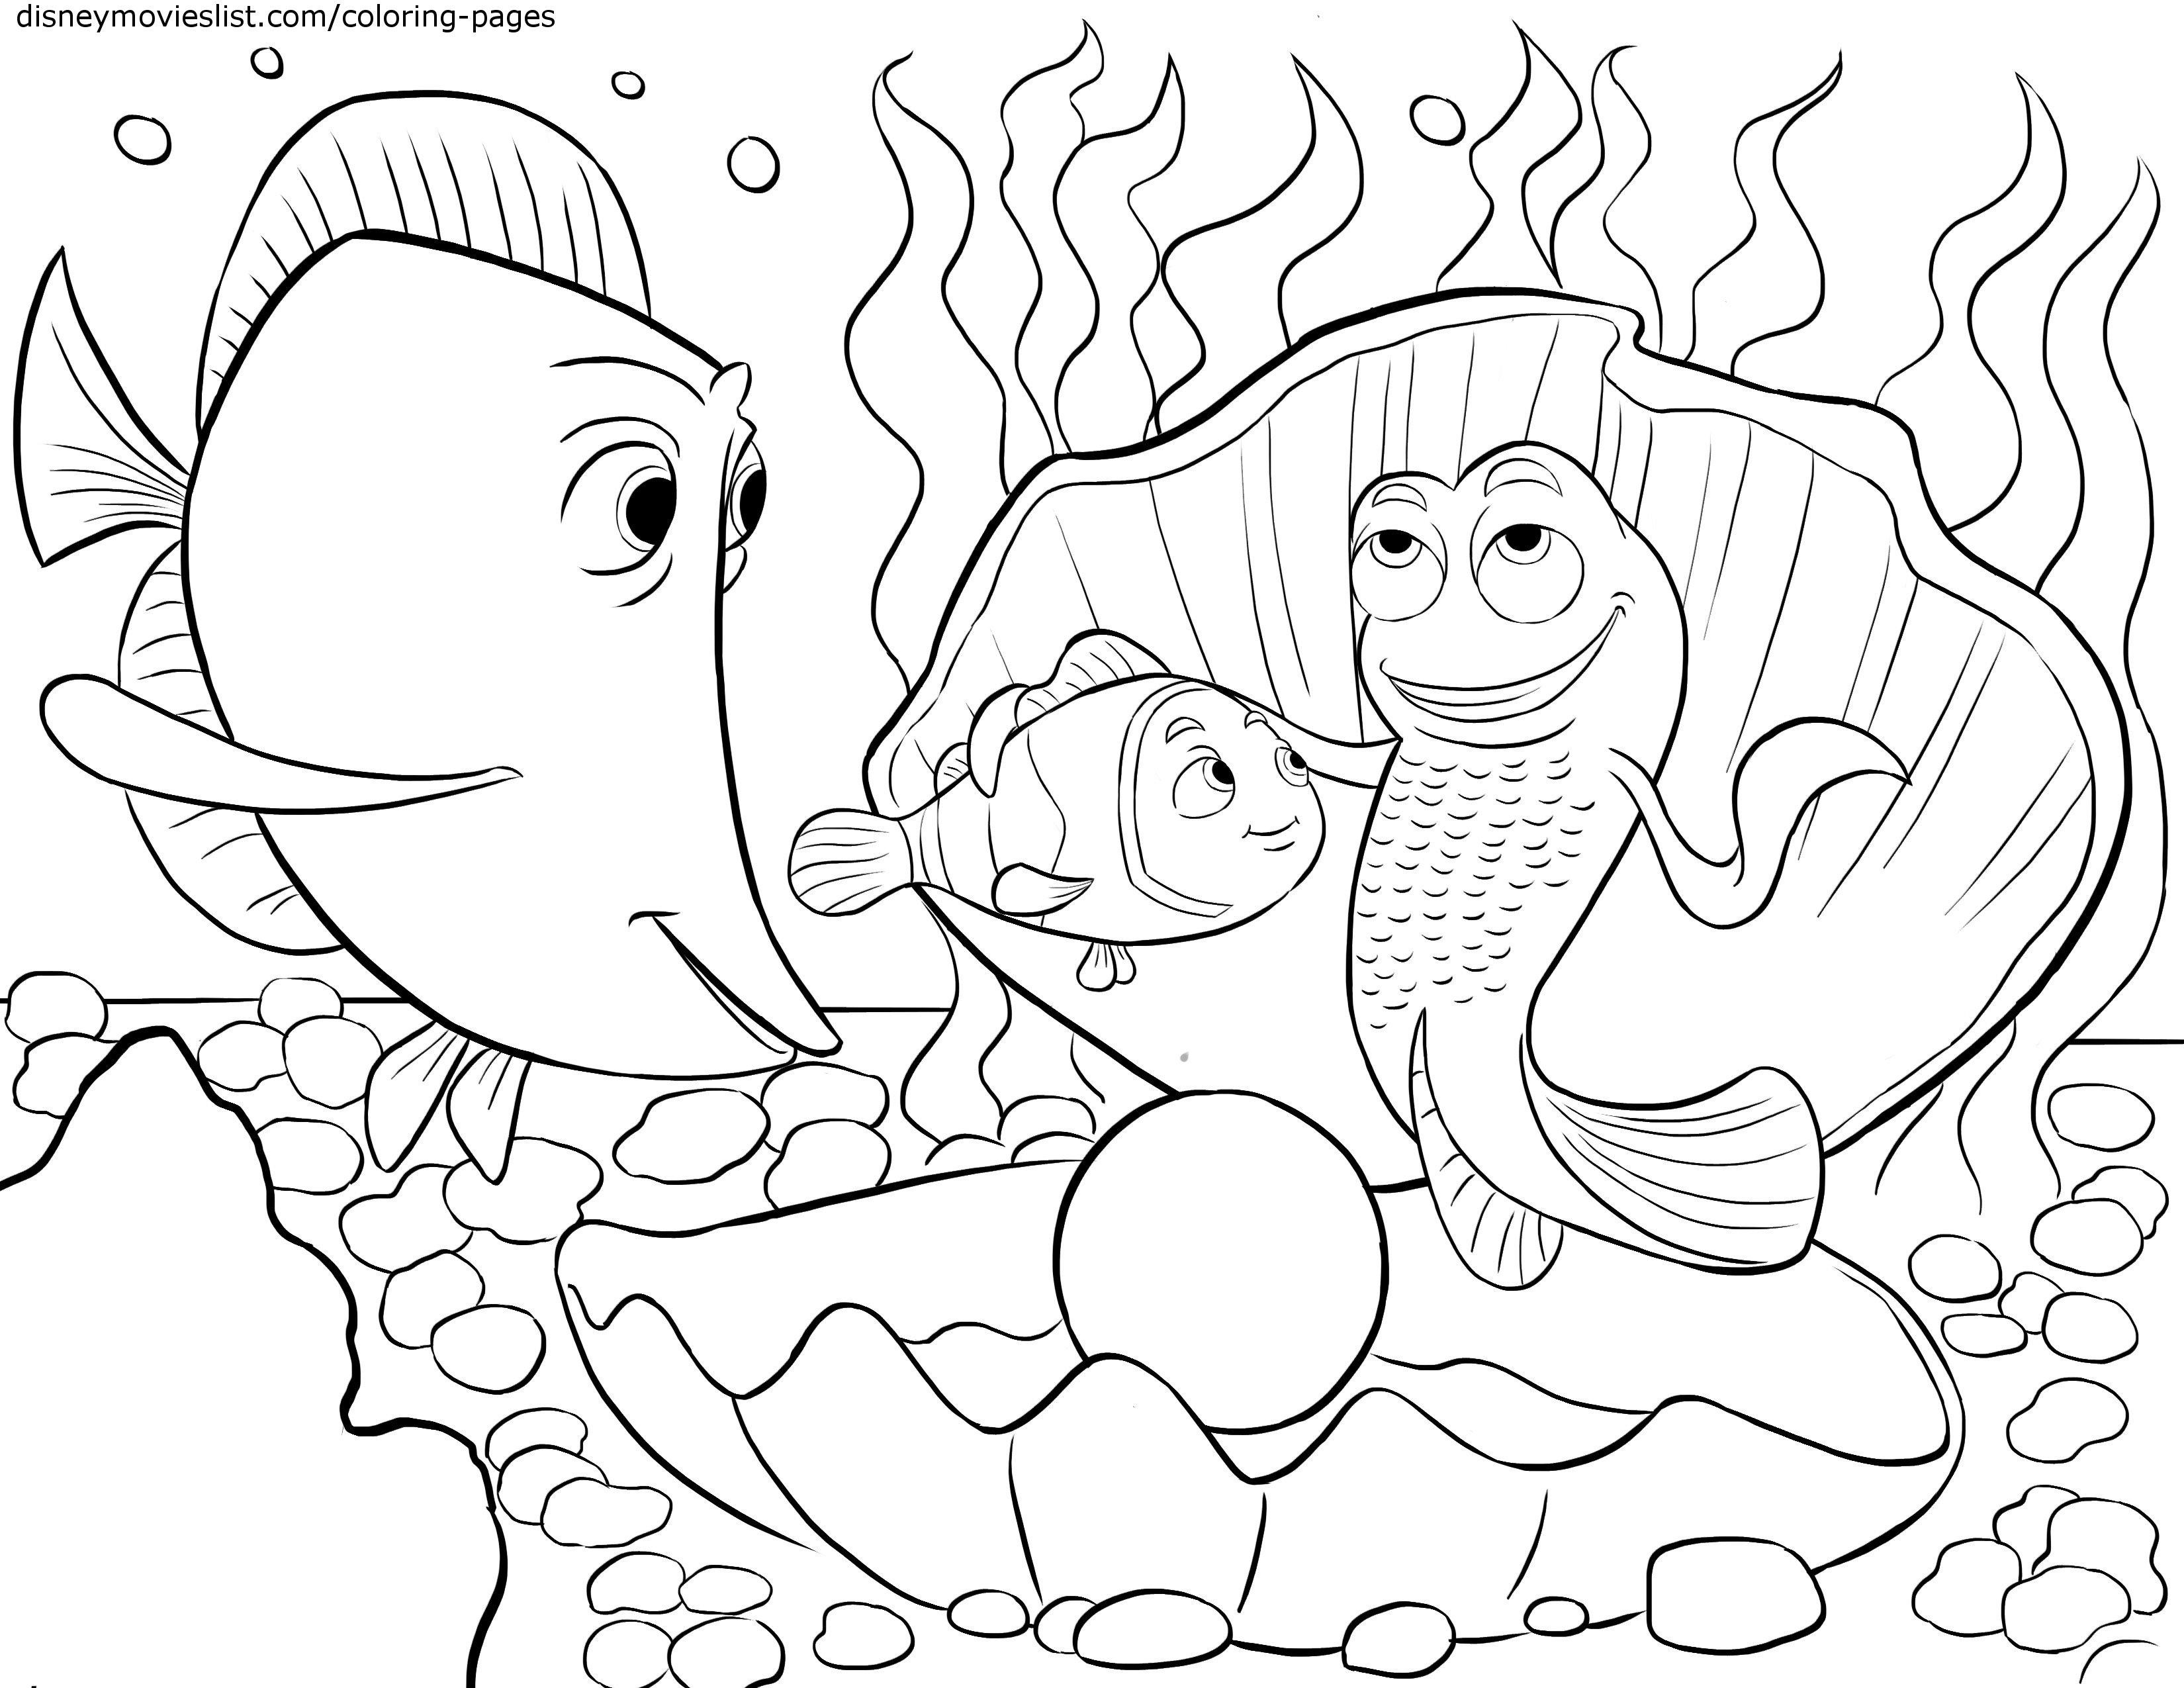 Coloring Book For Kids Pdf  Coloring Pages Marvellous Coloring Pages For Kids Pdf